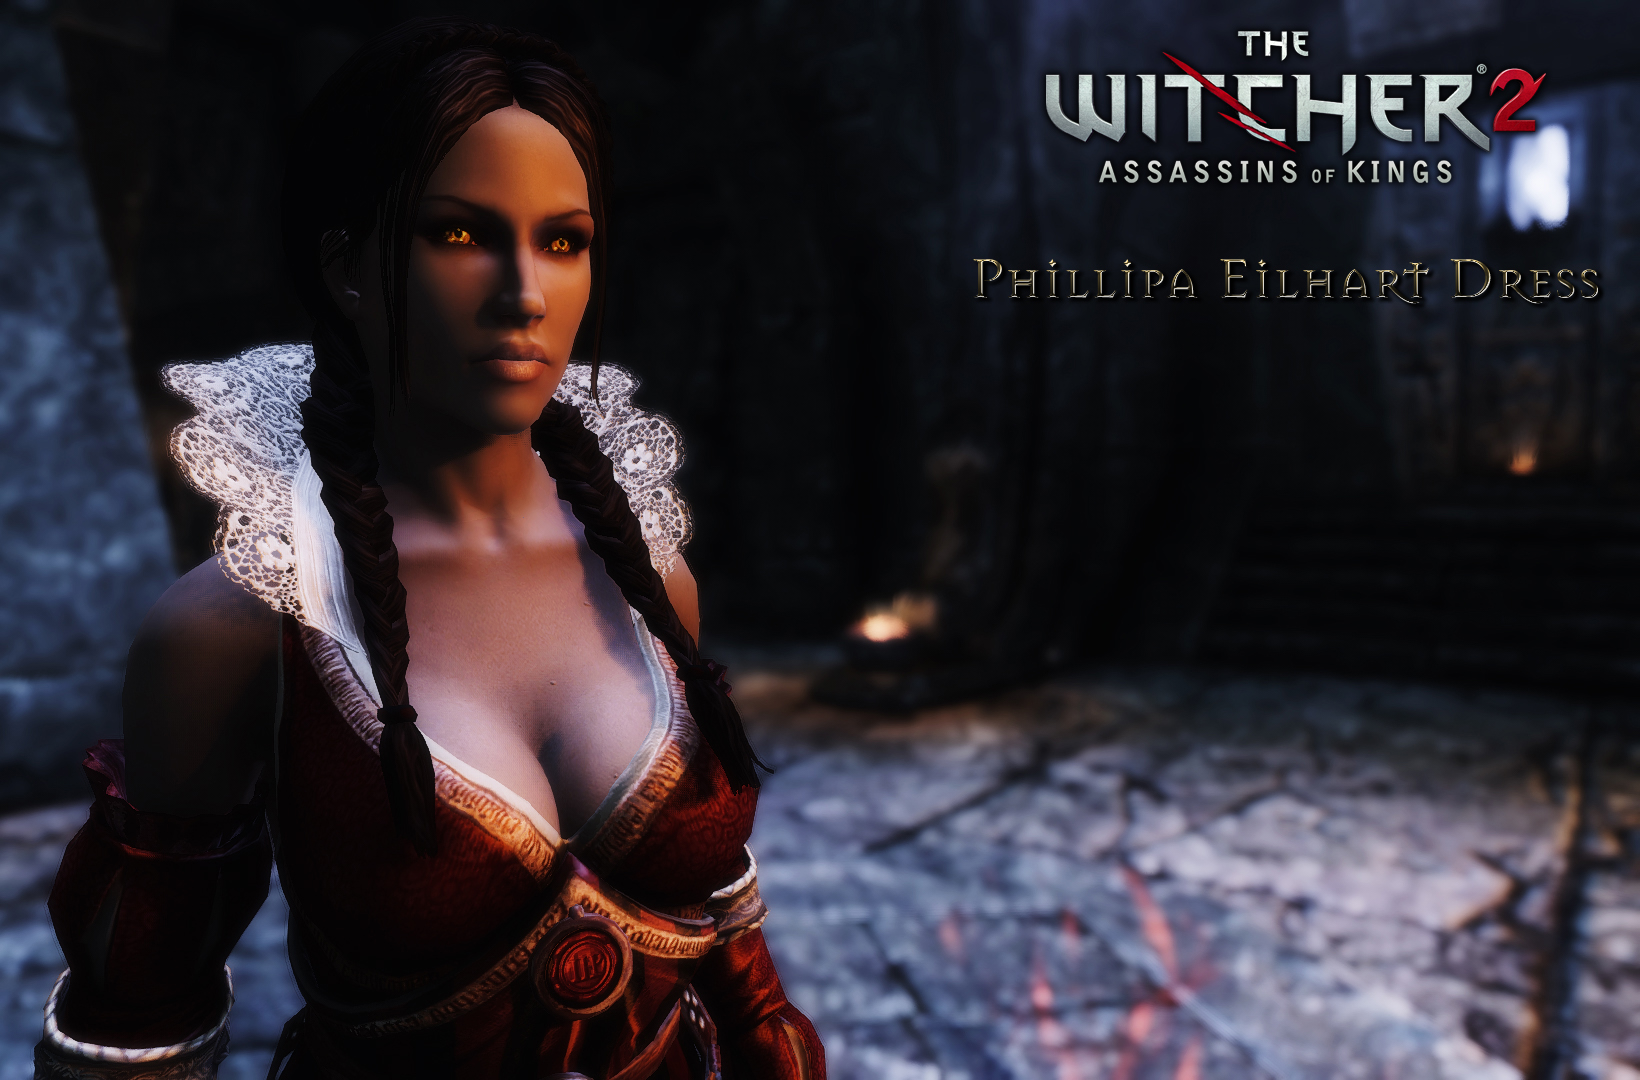 The_Witcher_2_Eilhart_Dress.jpg